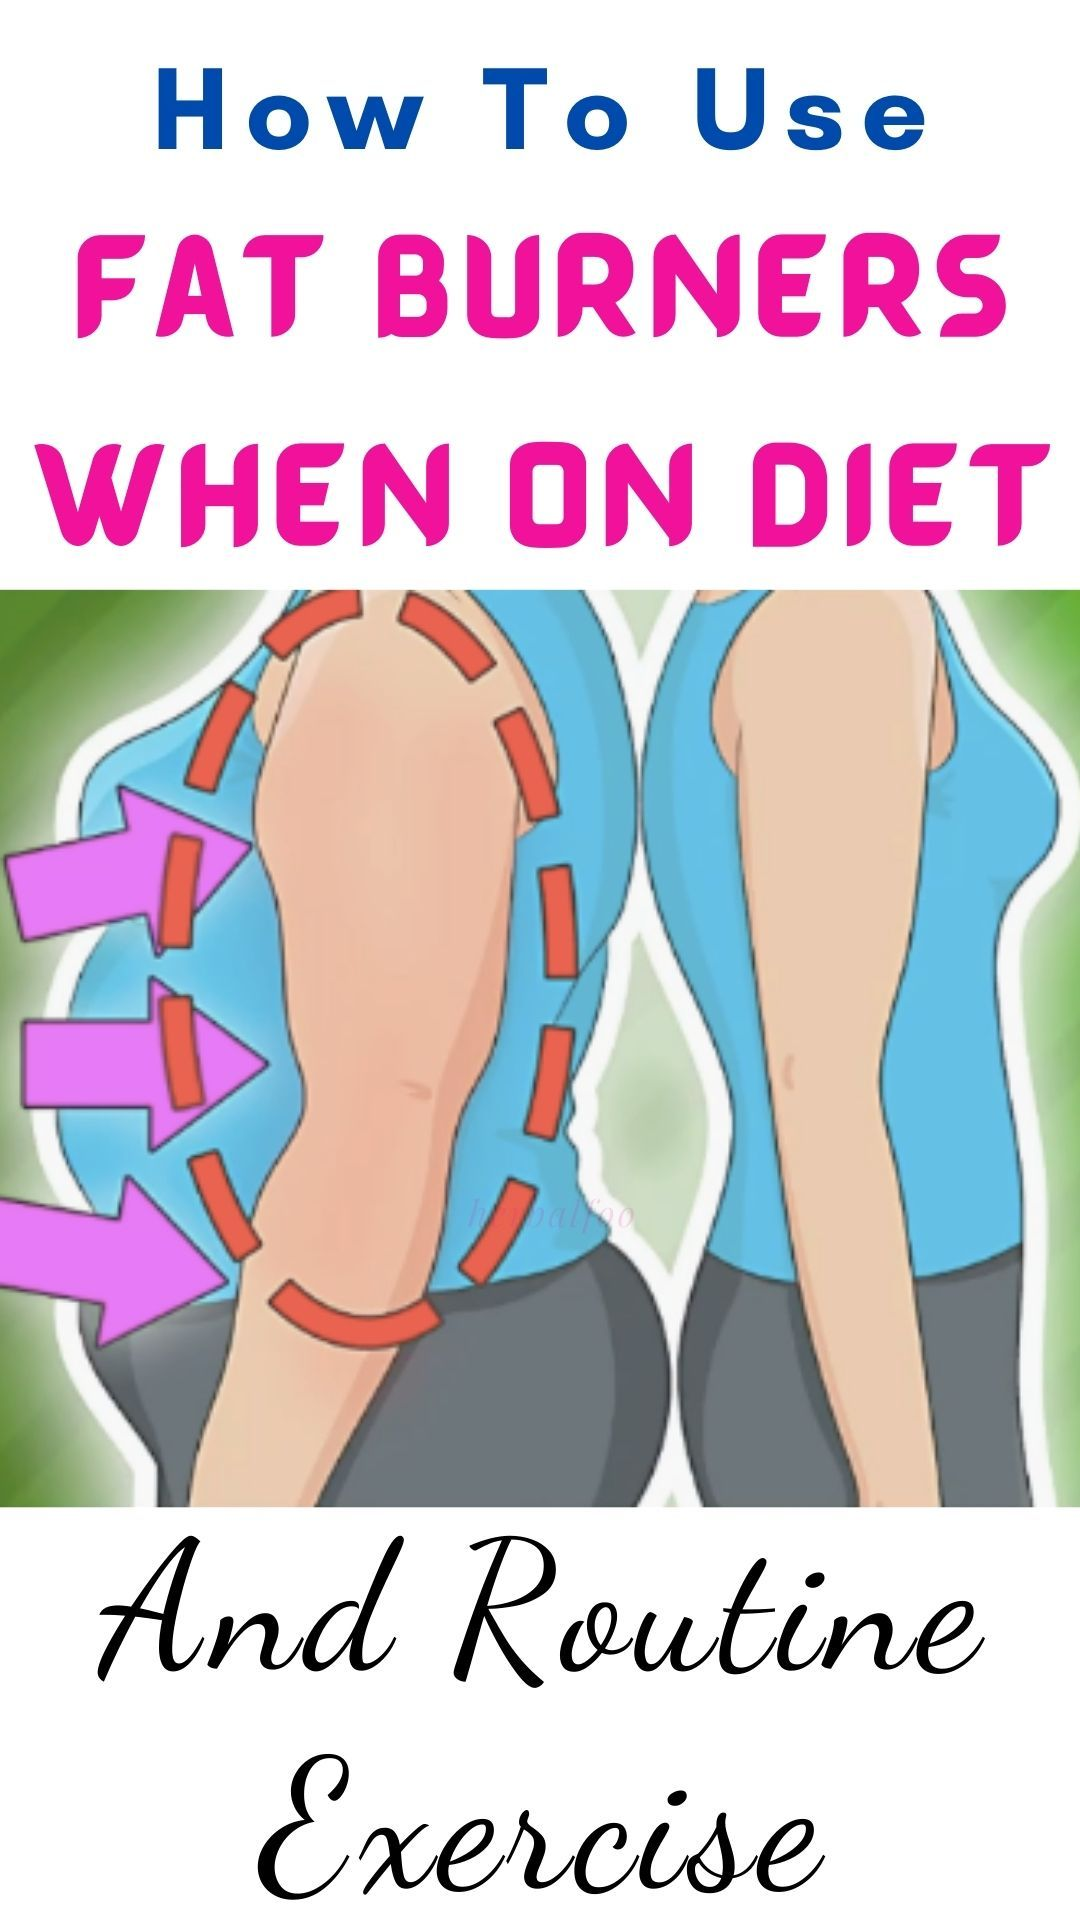 How To Use Fat Burners When On Diet And Routine Exercise